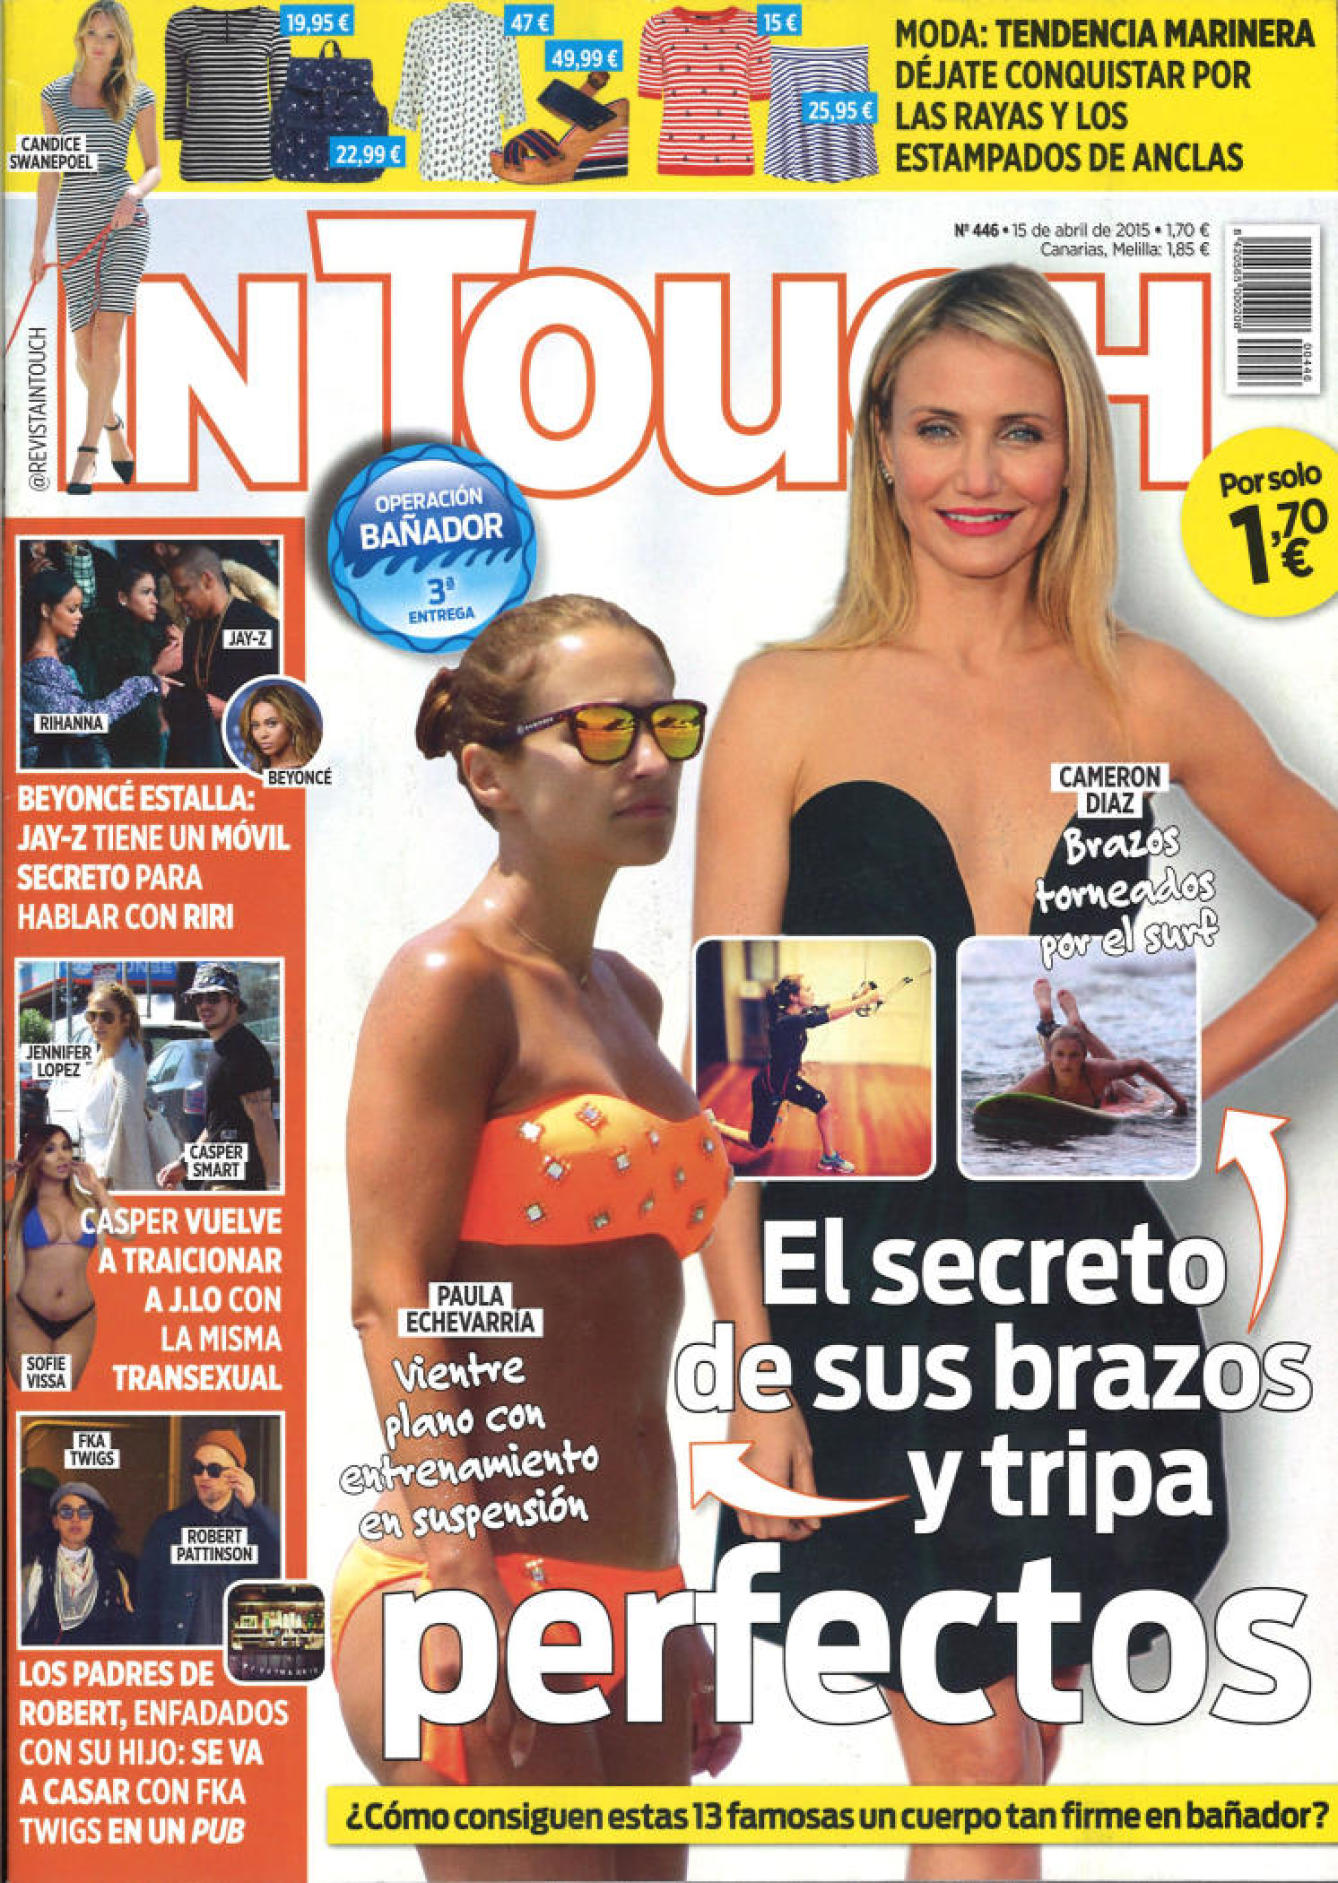 IN TOUCH portada 15 de Abril 2015